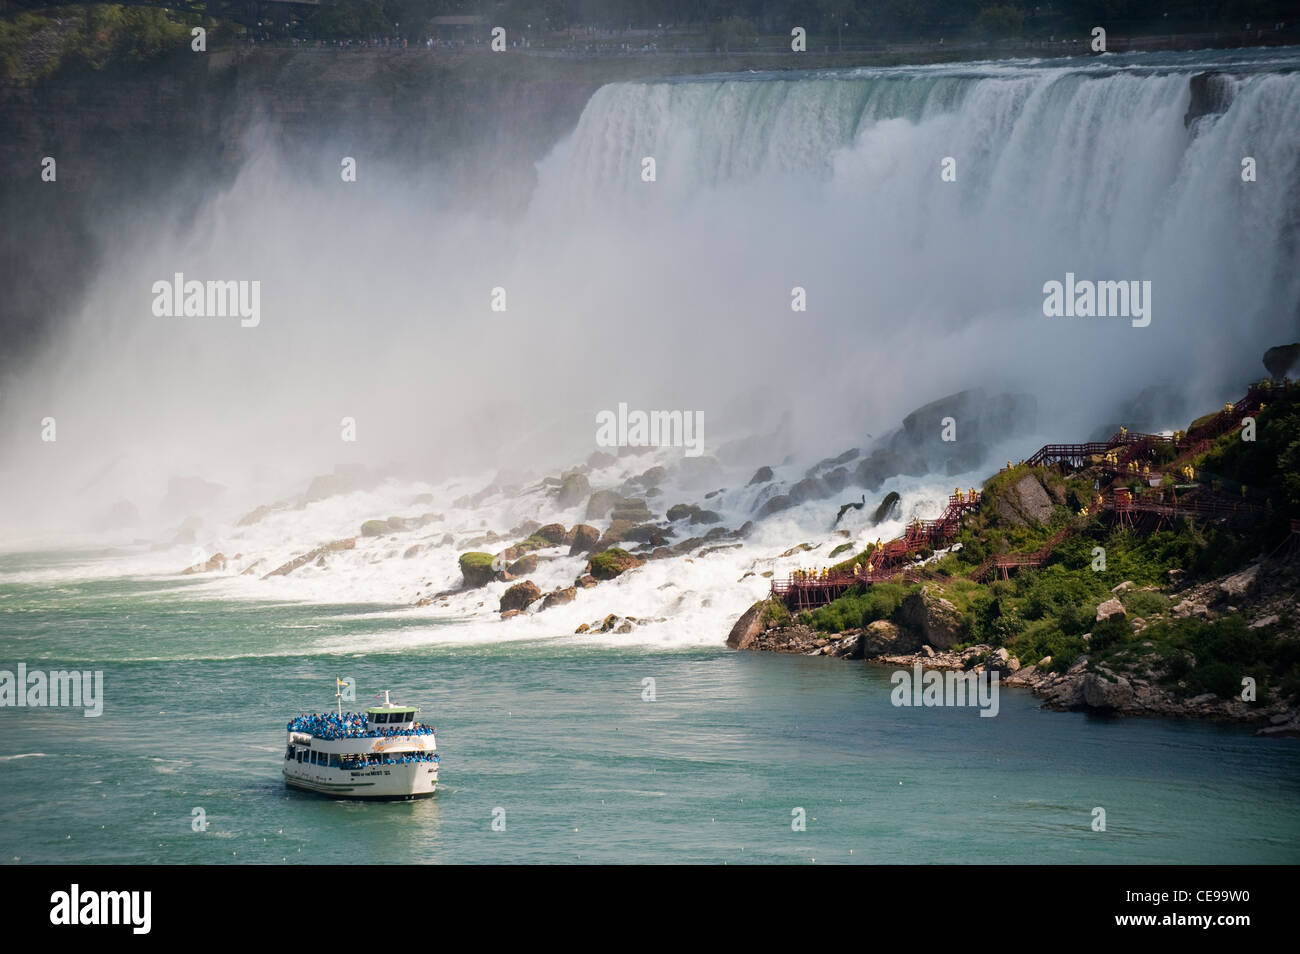 American Falls at Niagara, New York State, with Maid of the Mist sailing up the river. - Stock Image